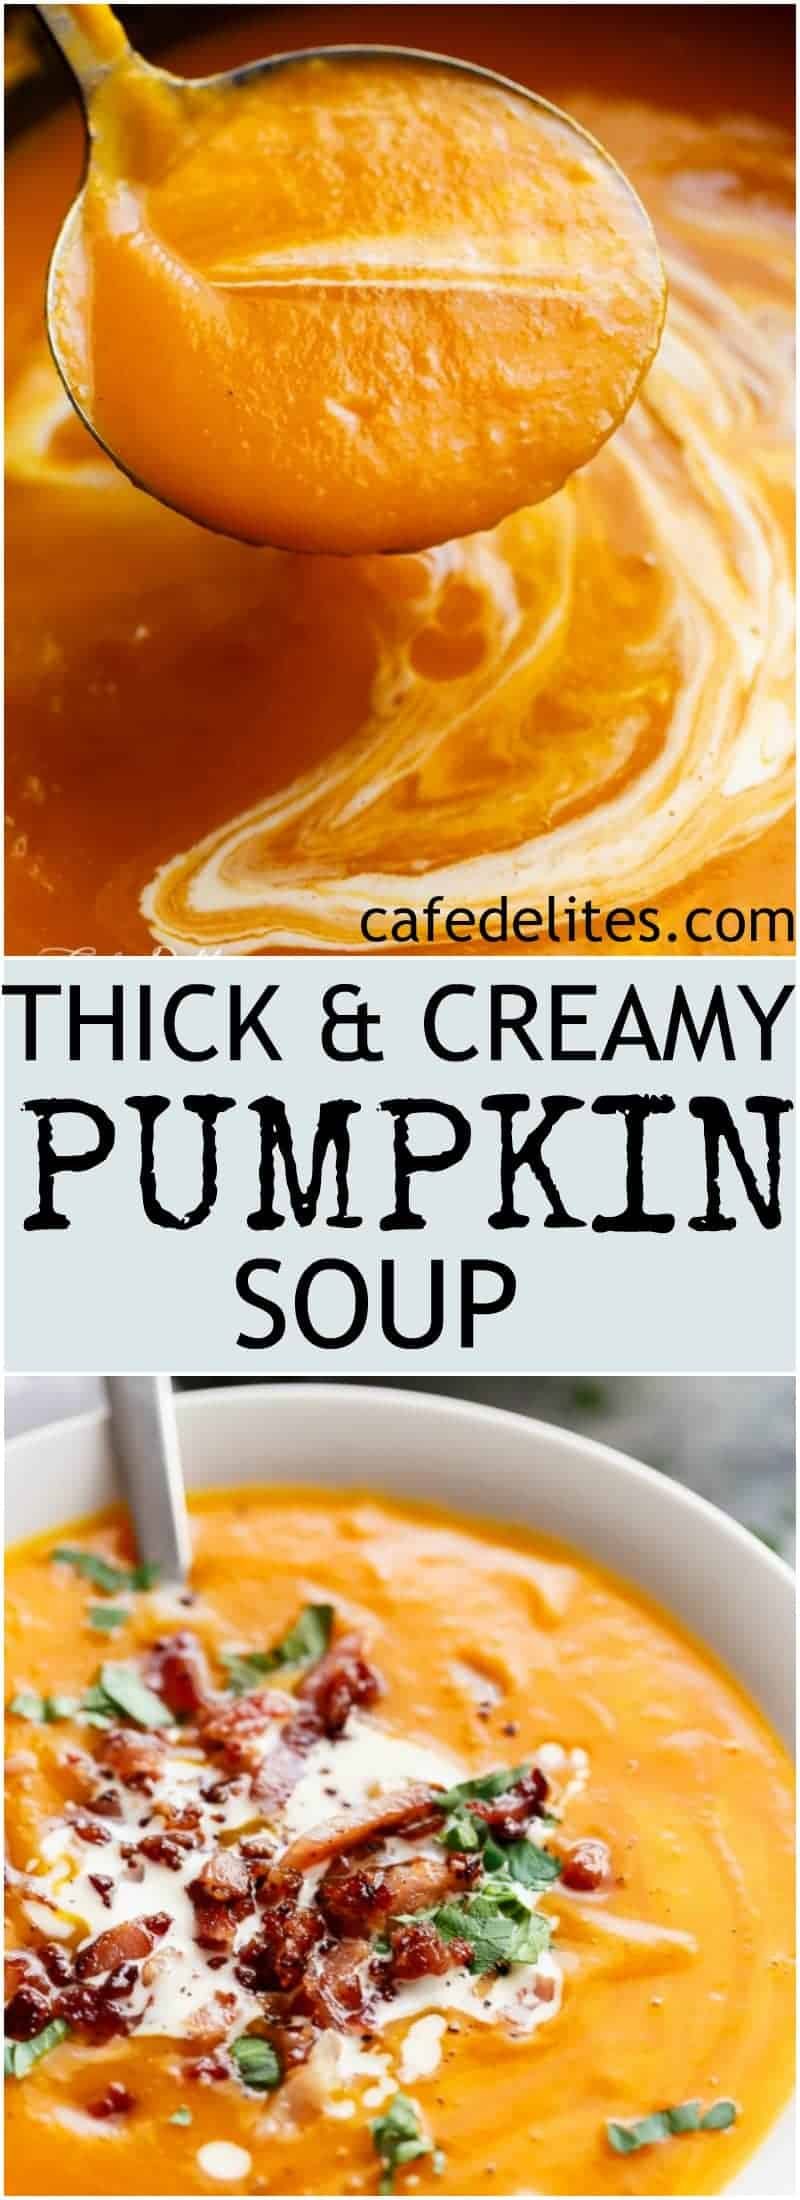 Thick & Creamy Pumpkin Soup is our family recipe, and a favourite weekly soup! Served with crispy bacon, this soup will become YOUR new favourite soup!   https://cafedelites.com